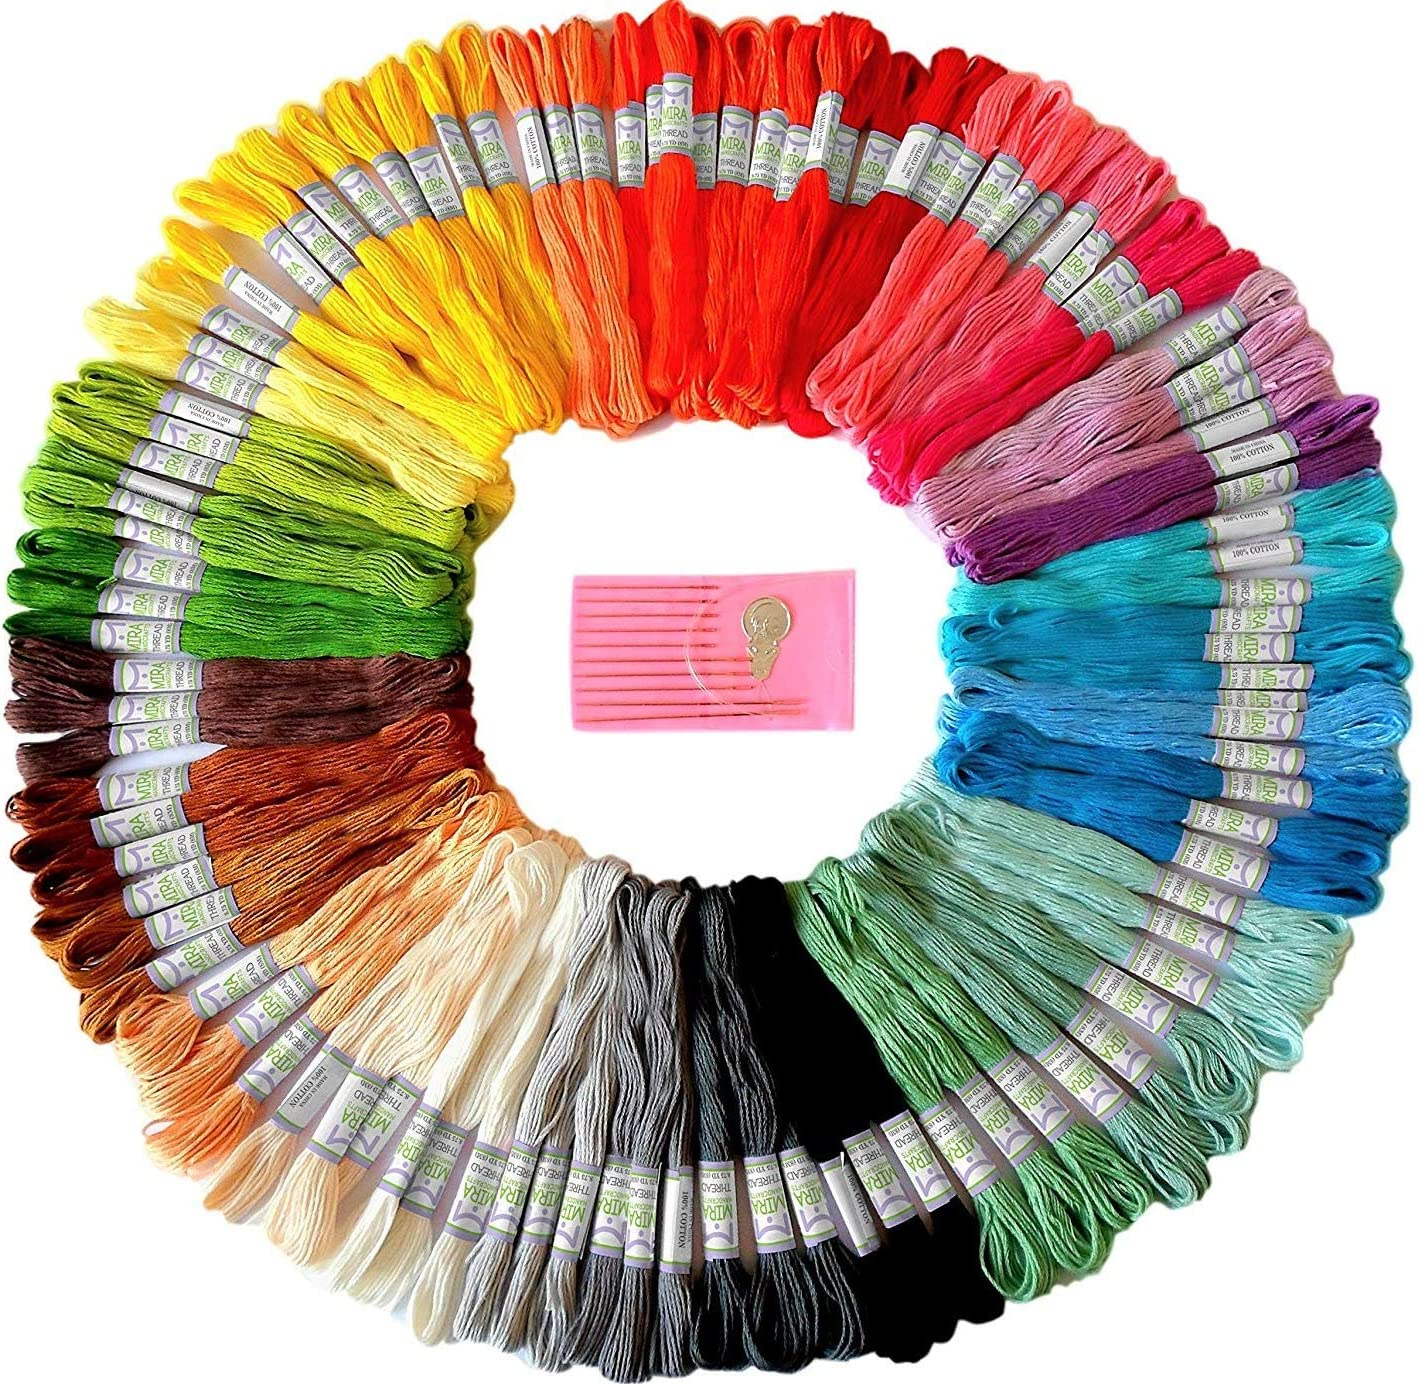 Best for crafts: Premium Rainbow Color Embroidery Floss